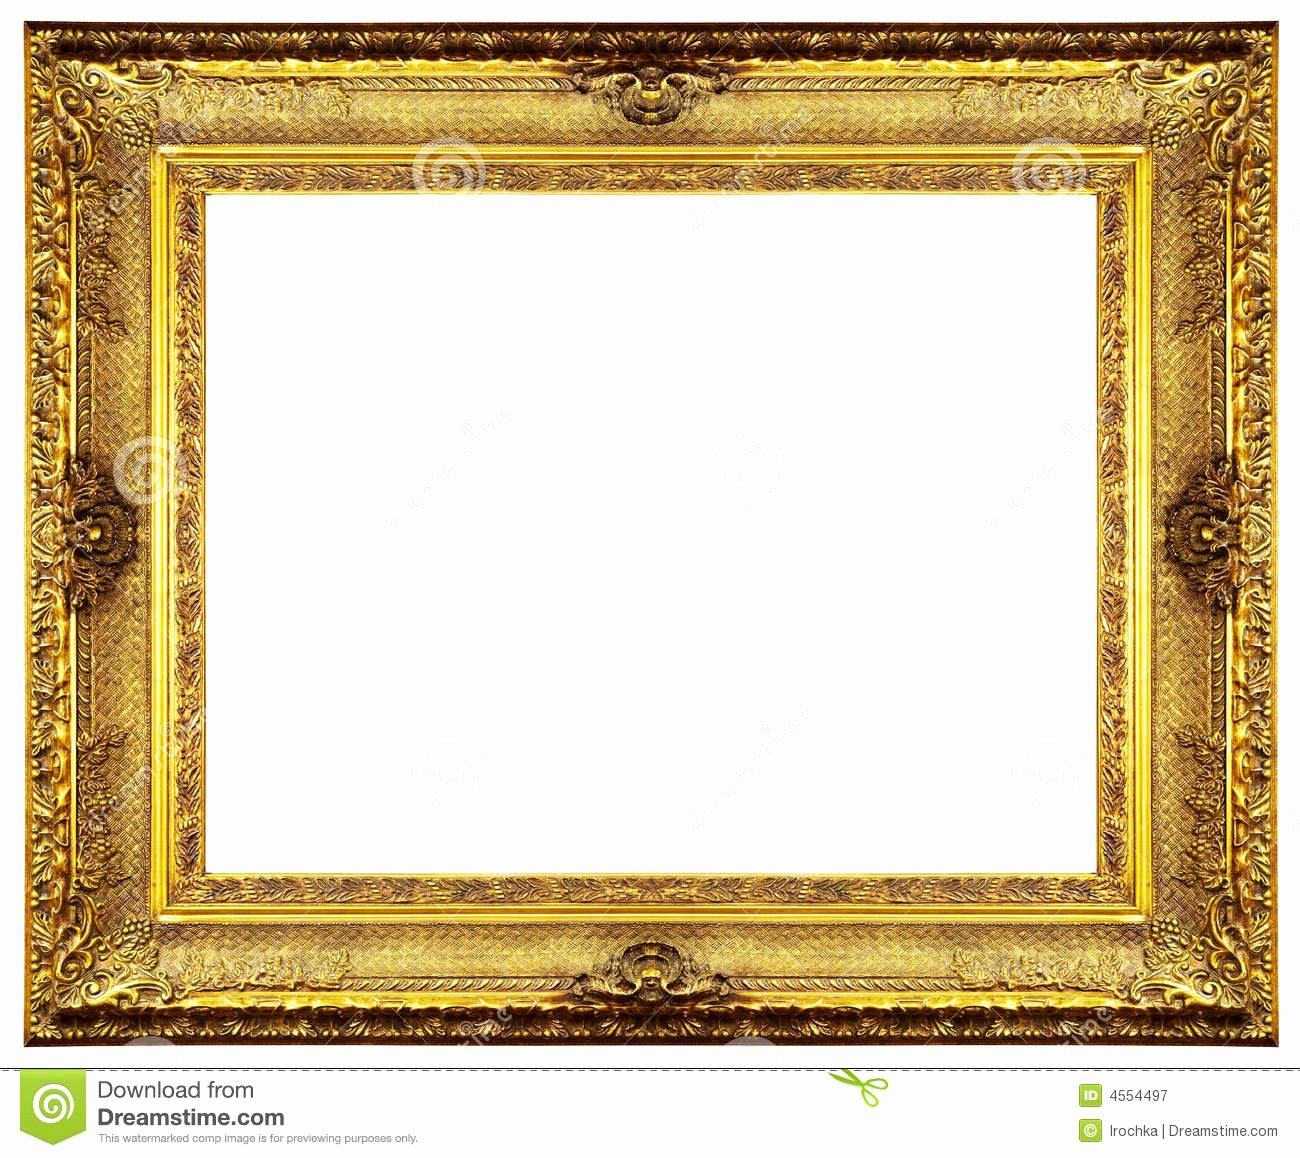 Free Gold Border Templates Elegant Golden Clipart Picture Frame Pencil and In Color Golden